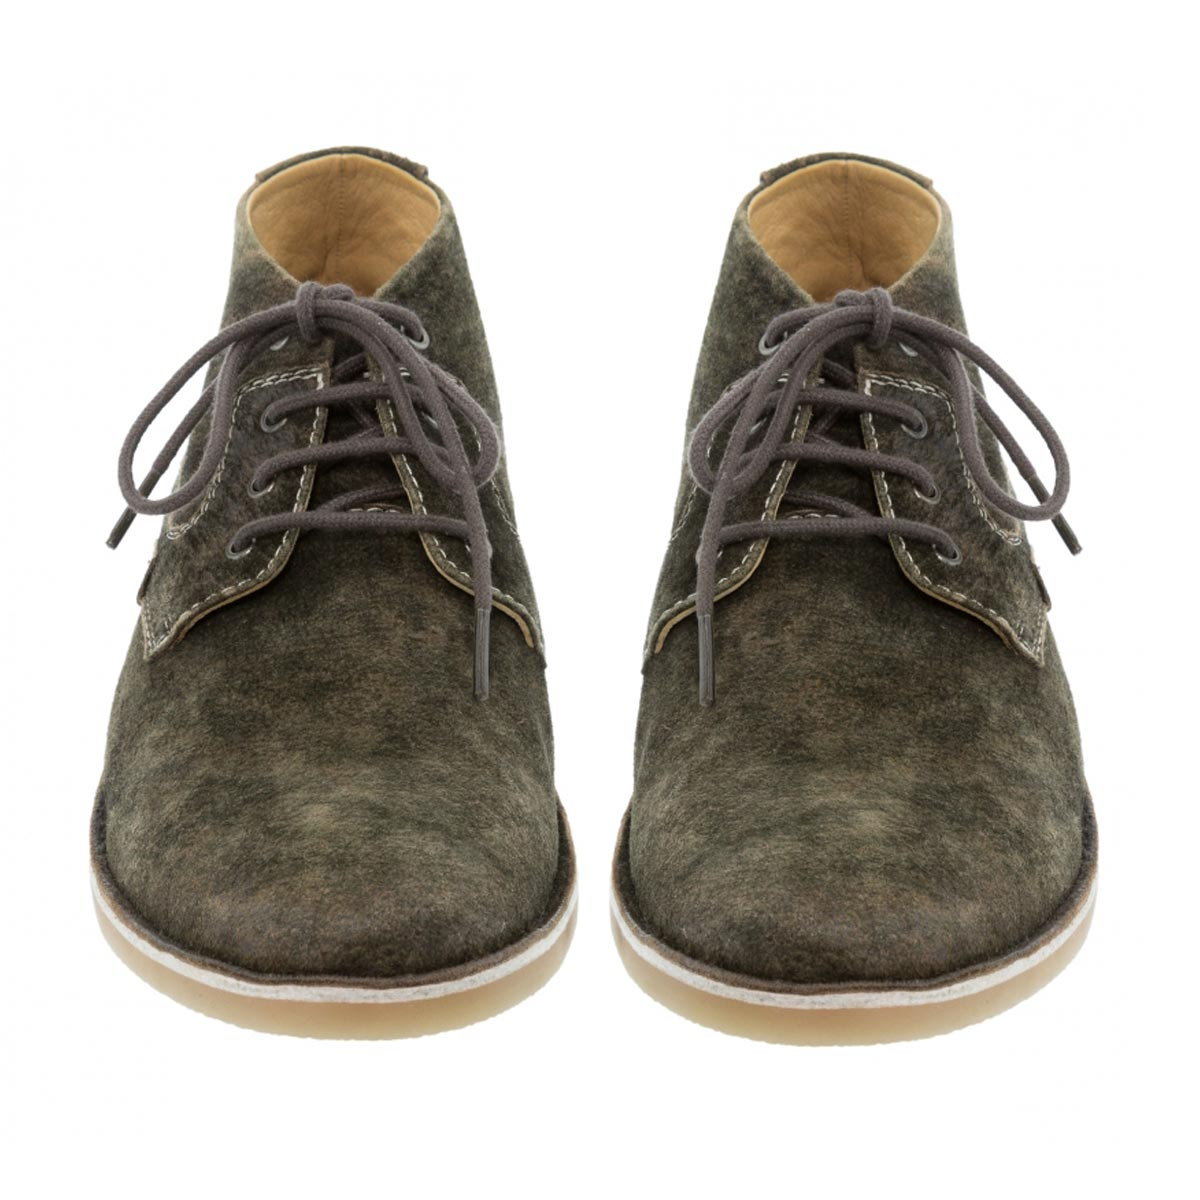 GREENISH BROWN MENS SHOES